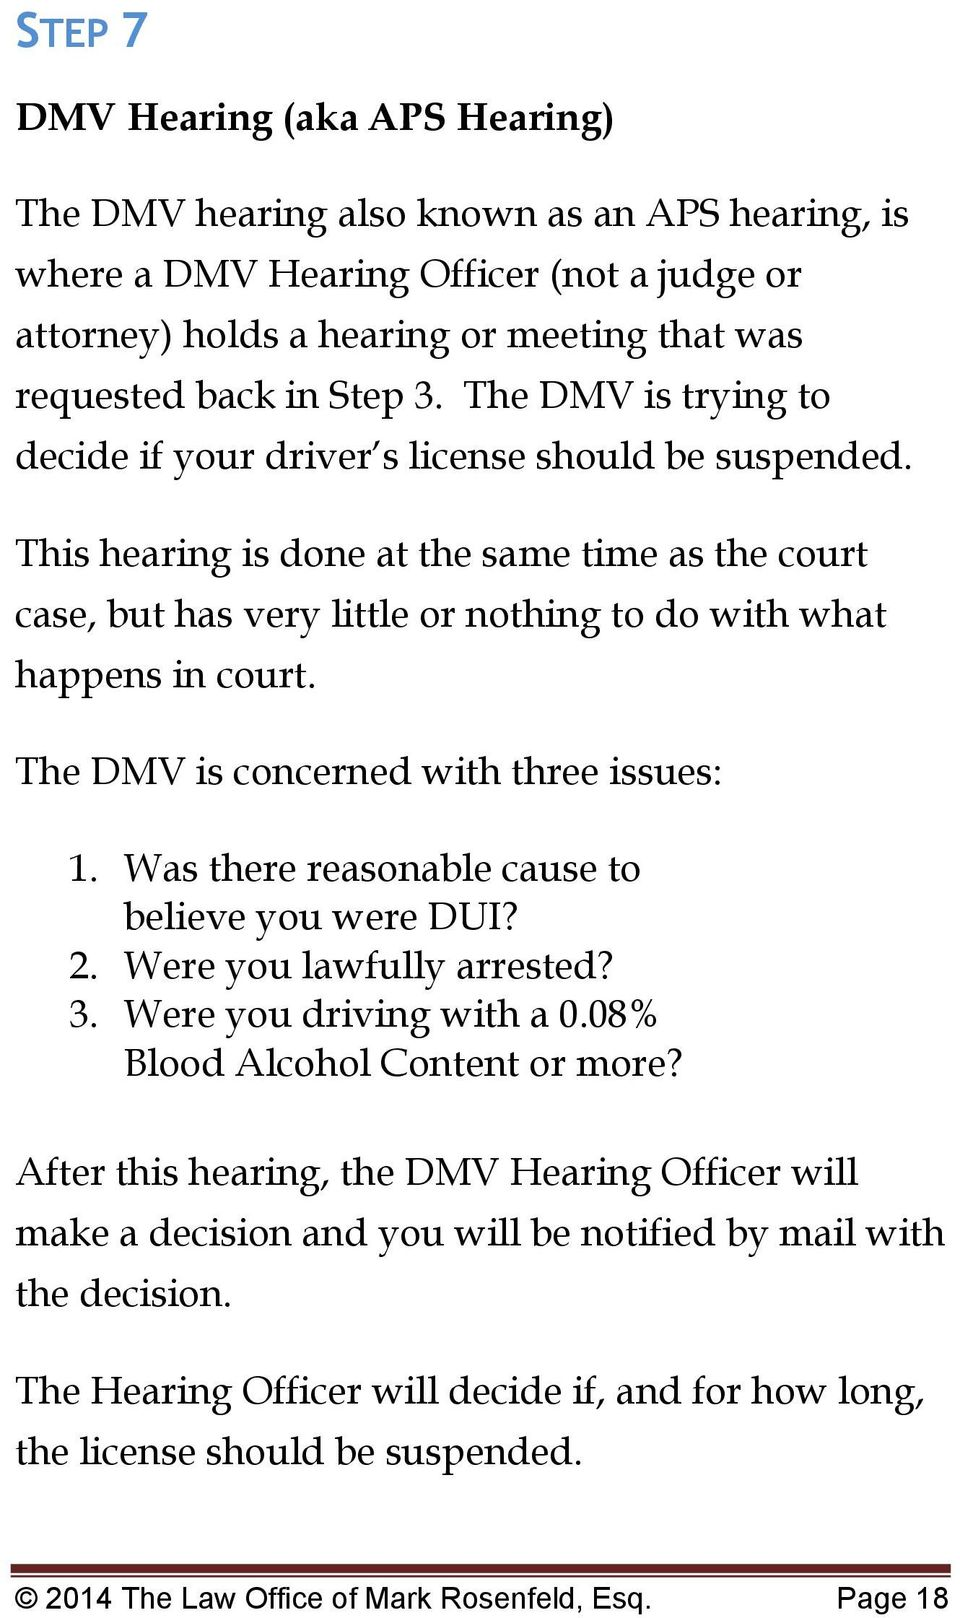 The DMV is concerned with three issues: 1. Was there reasonable cause to believe you were DUI? 2. Were you lawfully arrested? 3. Were you driving with a 0.08% Blood Alcohol Content or more?